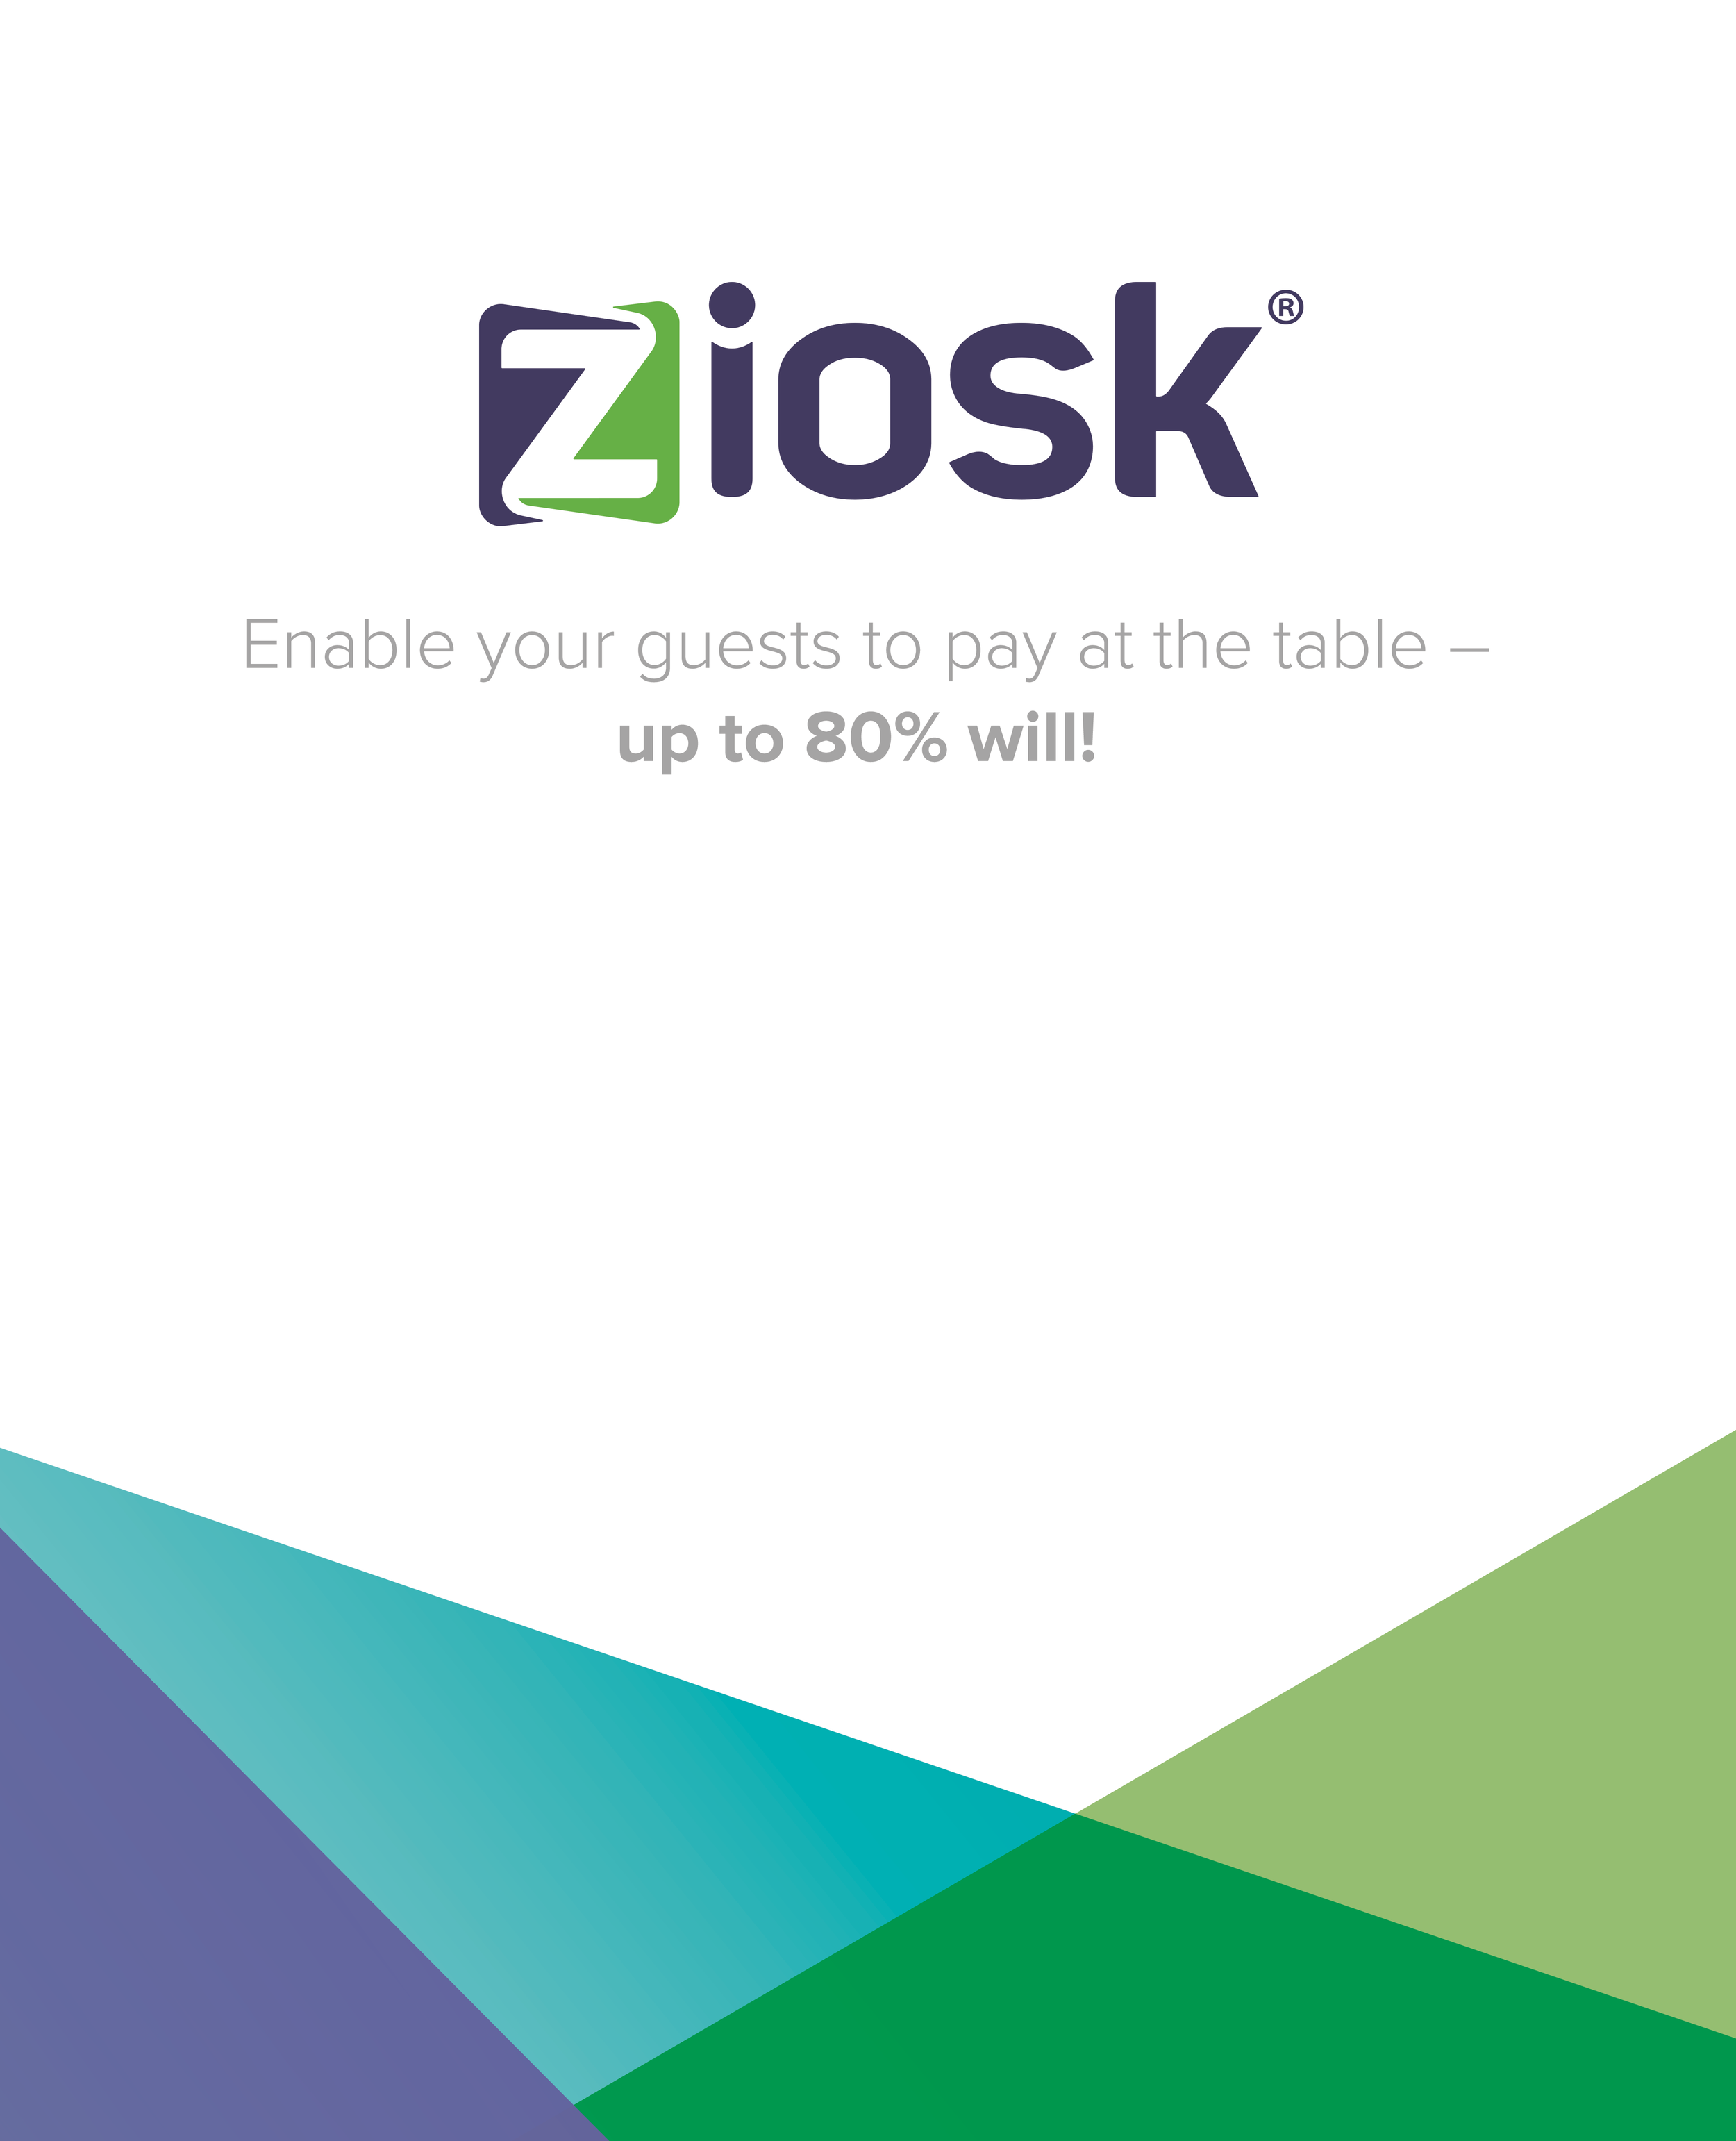 Ziosk_TradeShow_FrontTable1.png